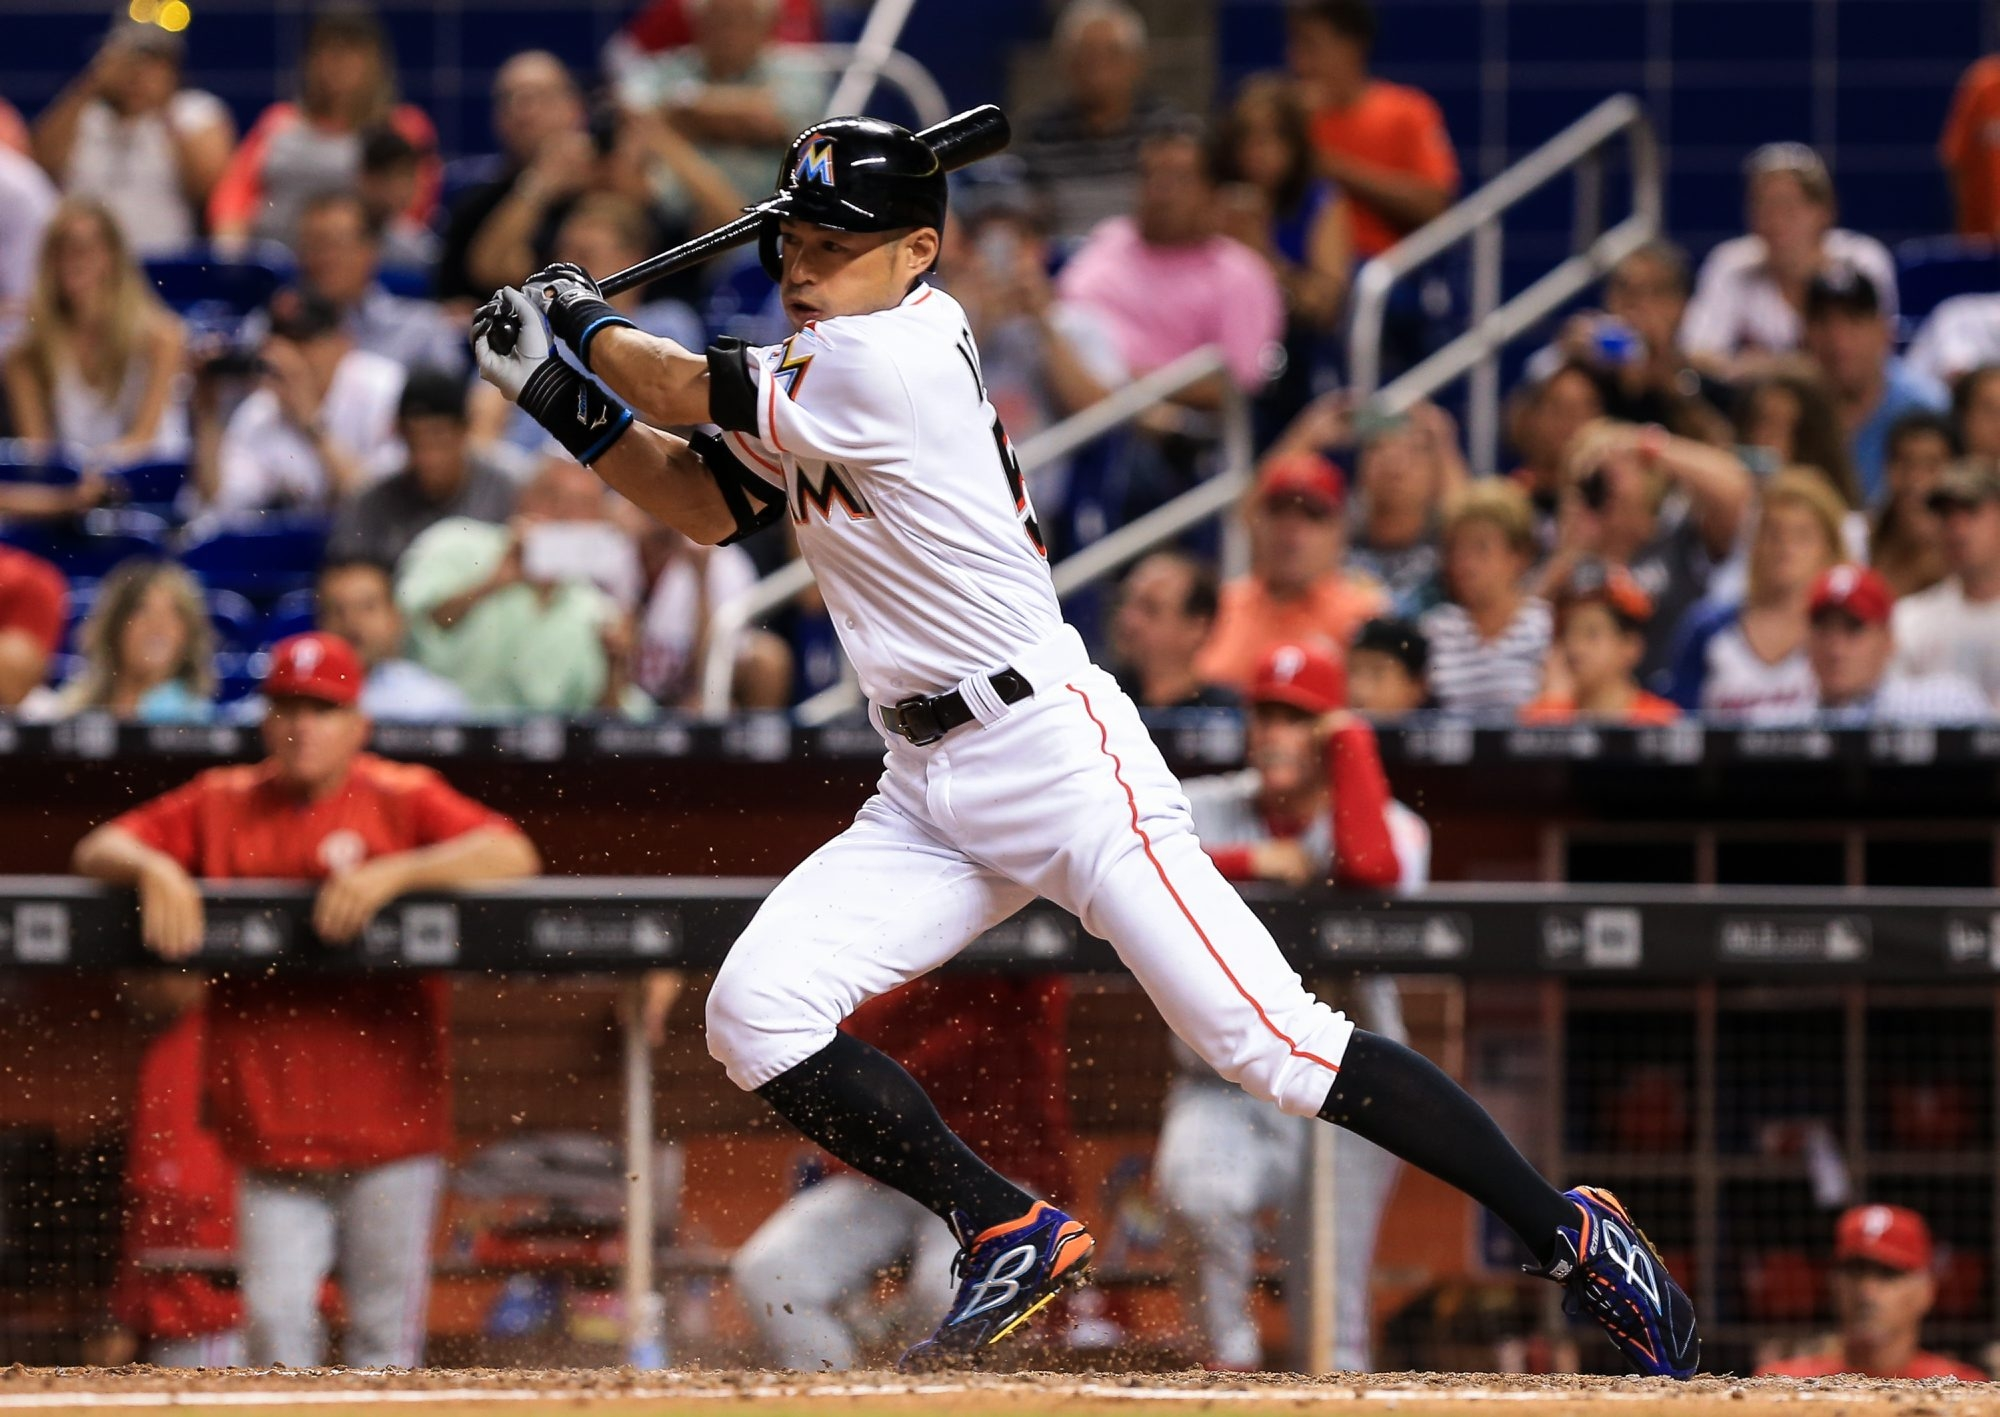 Ichiro Suzuki (51) of the Miami Marlins during an at-bat during the eighth inning of the game against the Philadelphia Phillies at Marlins Park on Monday in Miami, Fla.